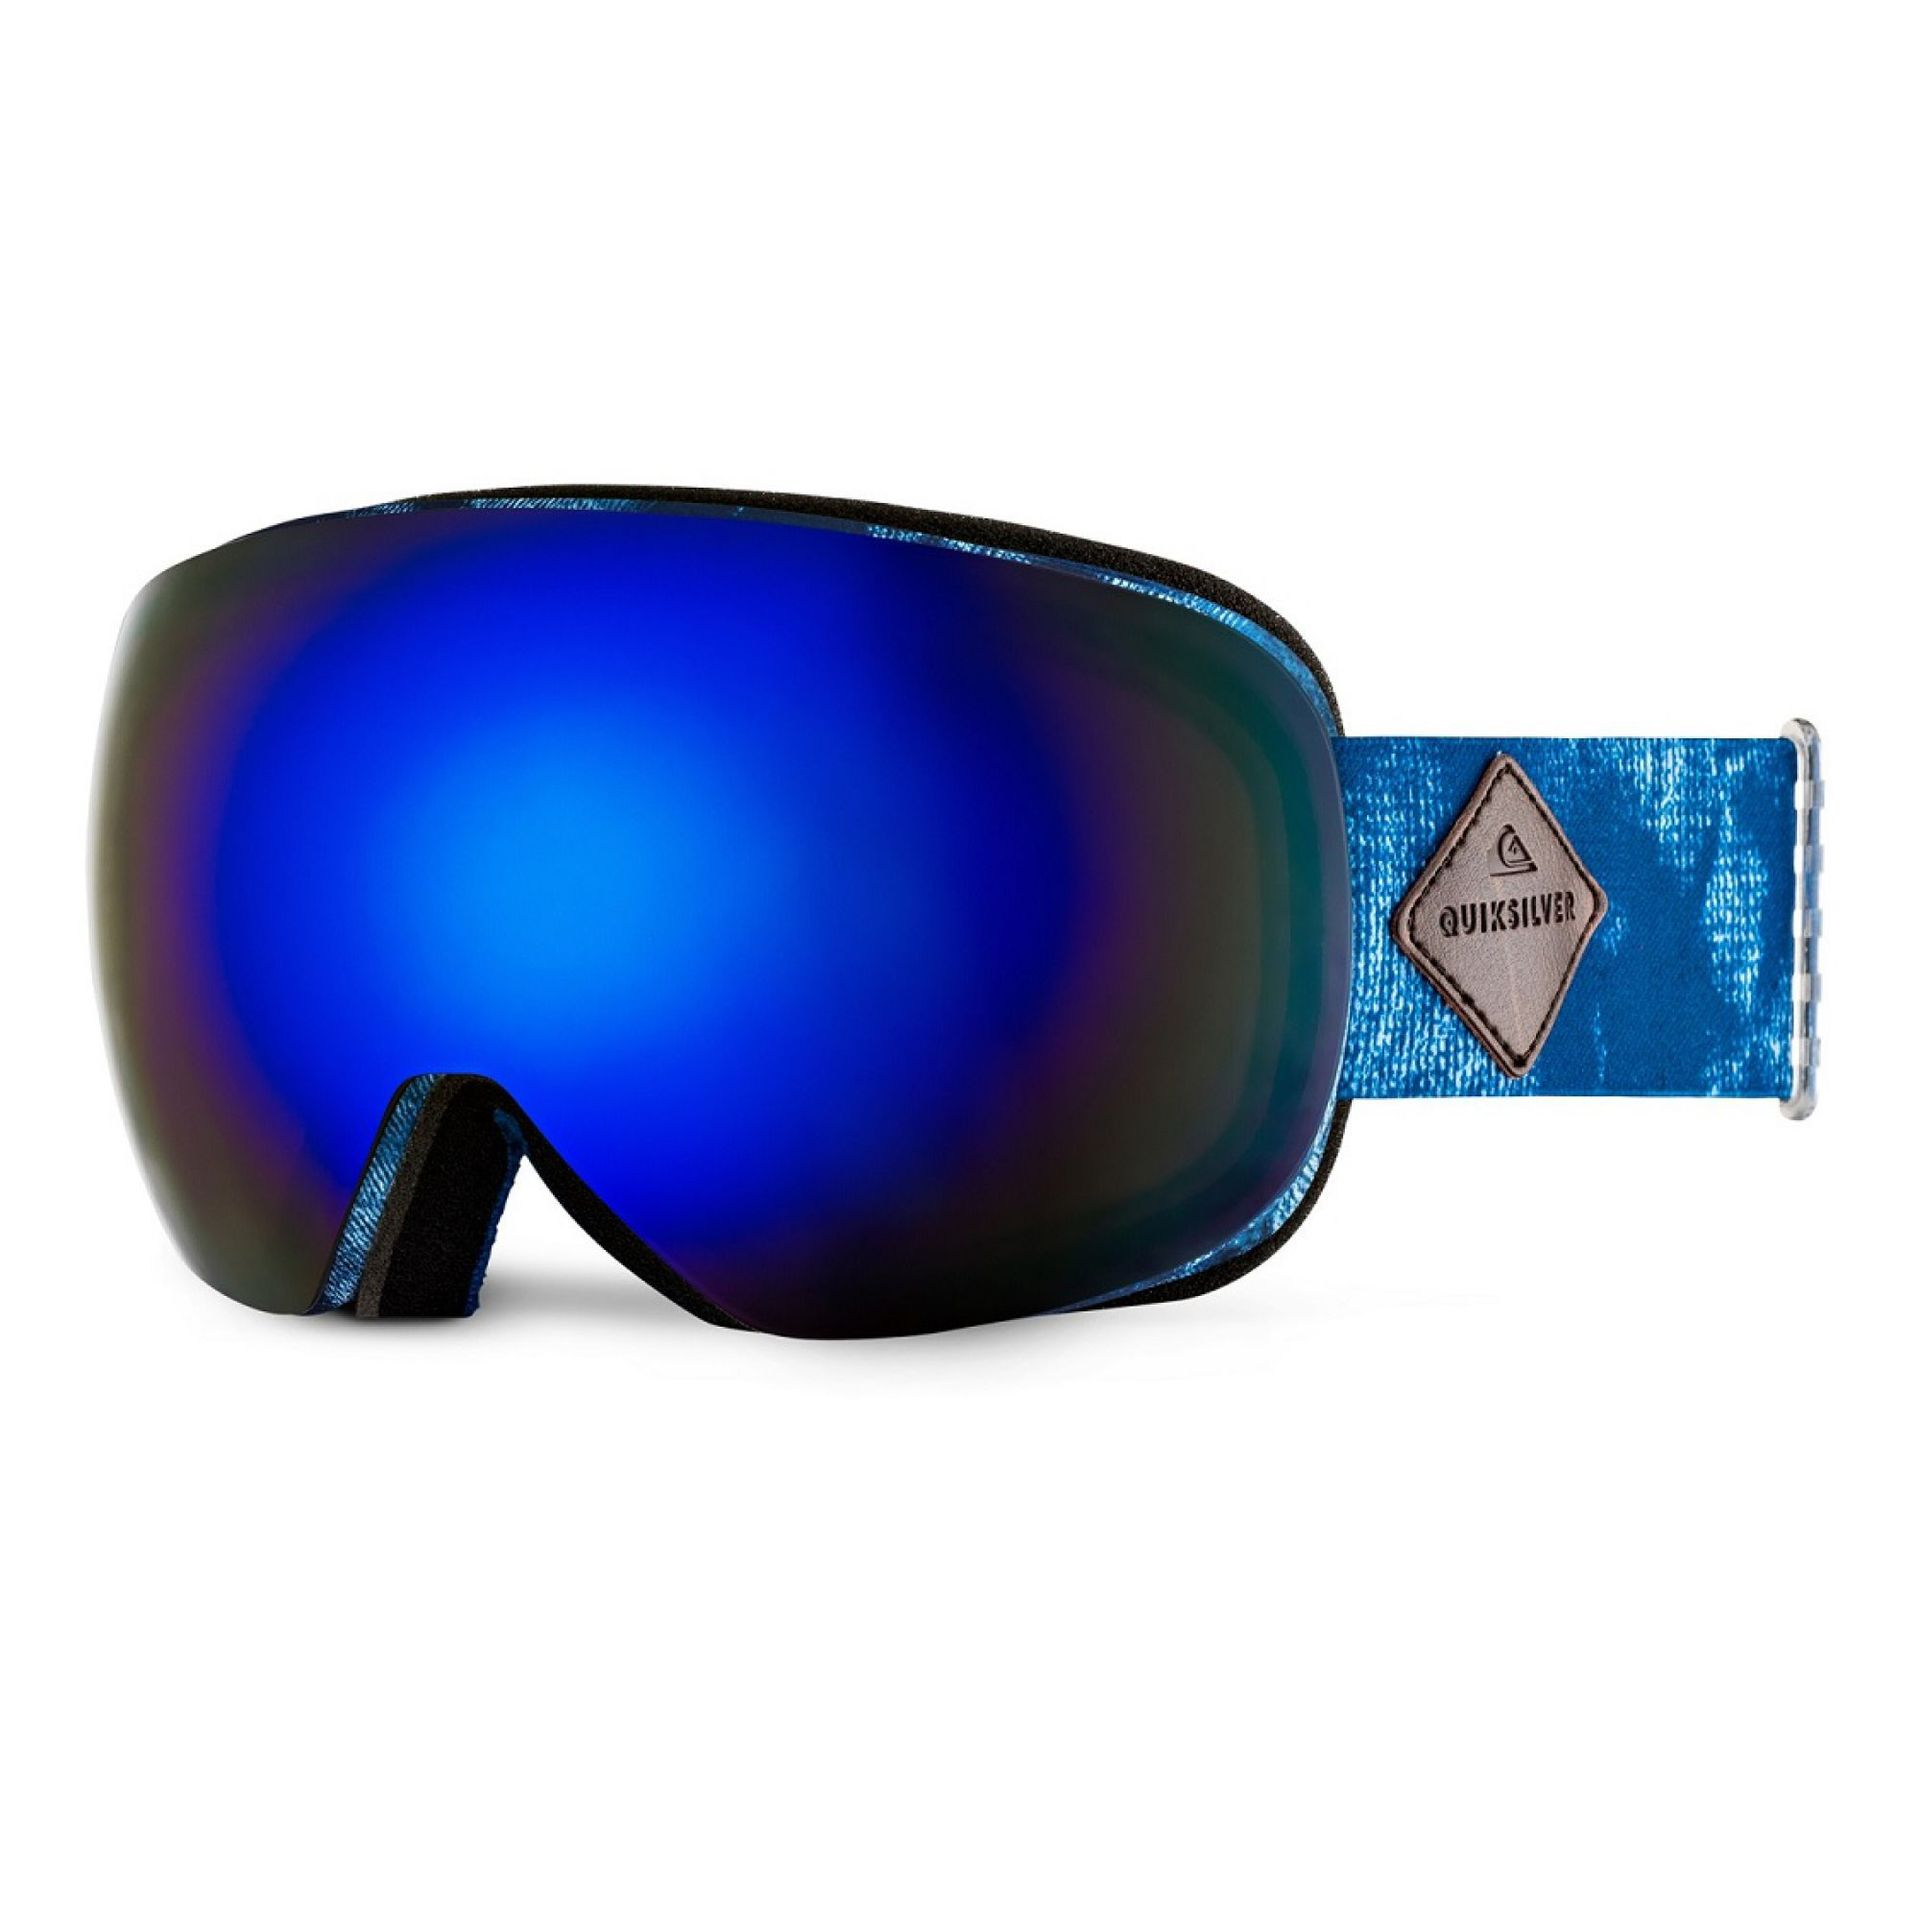 GOGLE QUIKSILVER QS-R HIGHDYE BLUE|AMBER ROSE ML BLUE